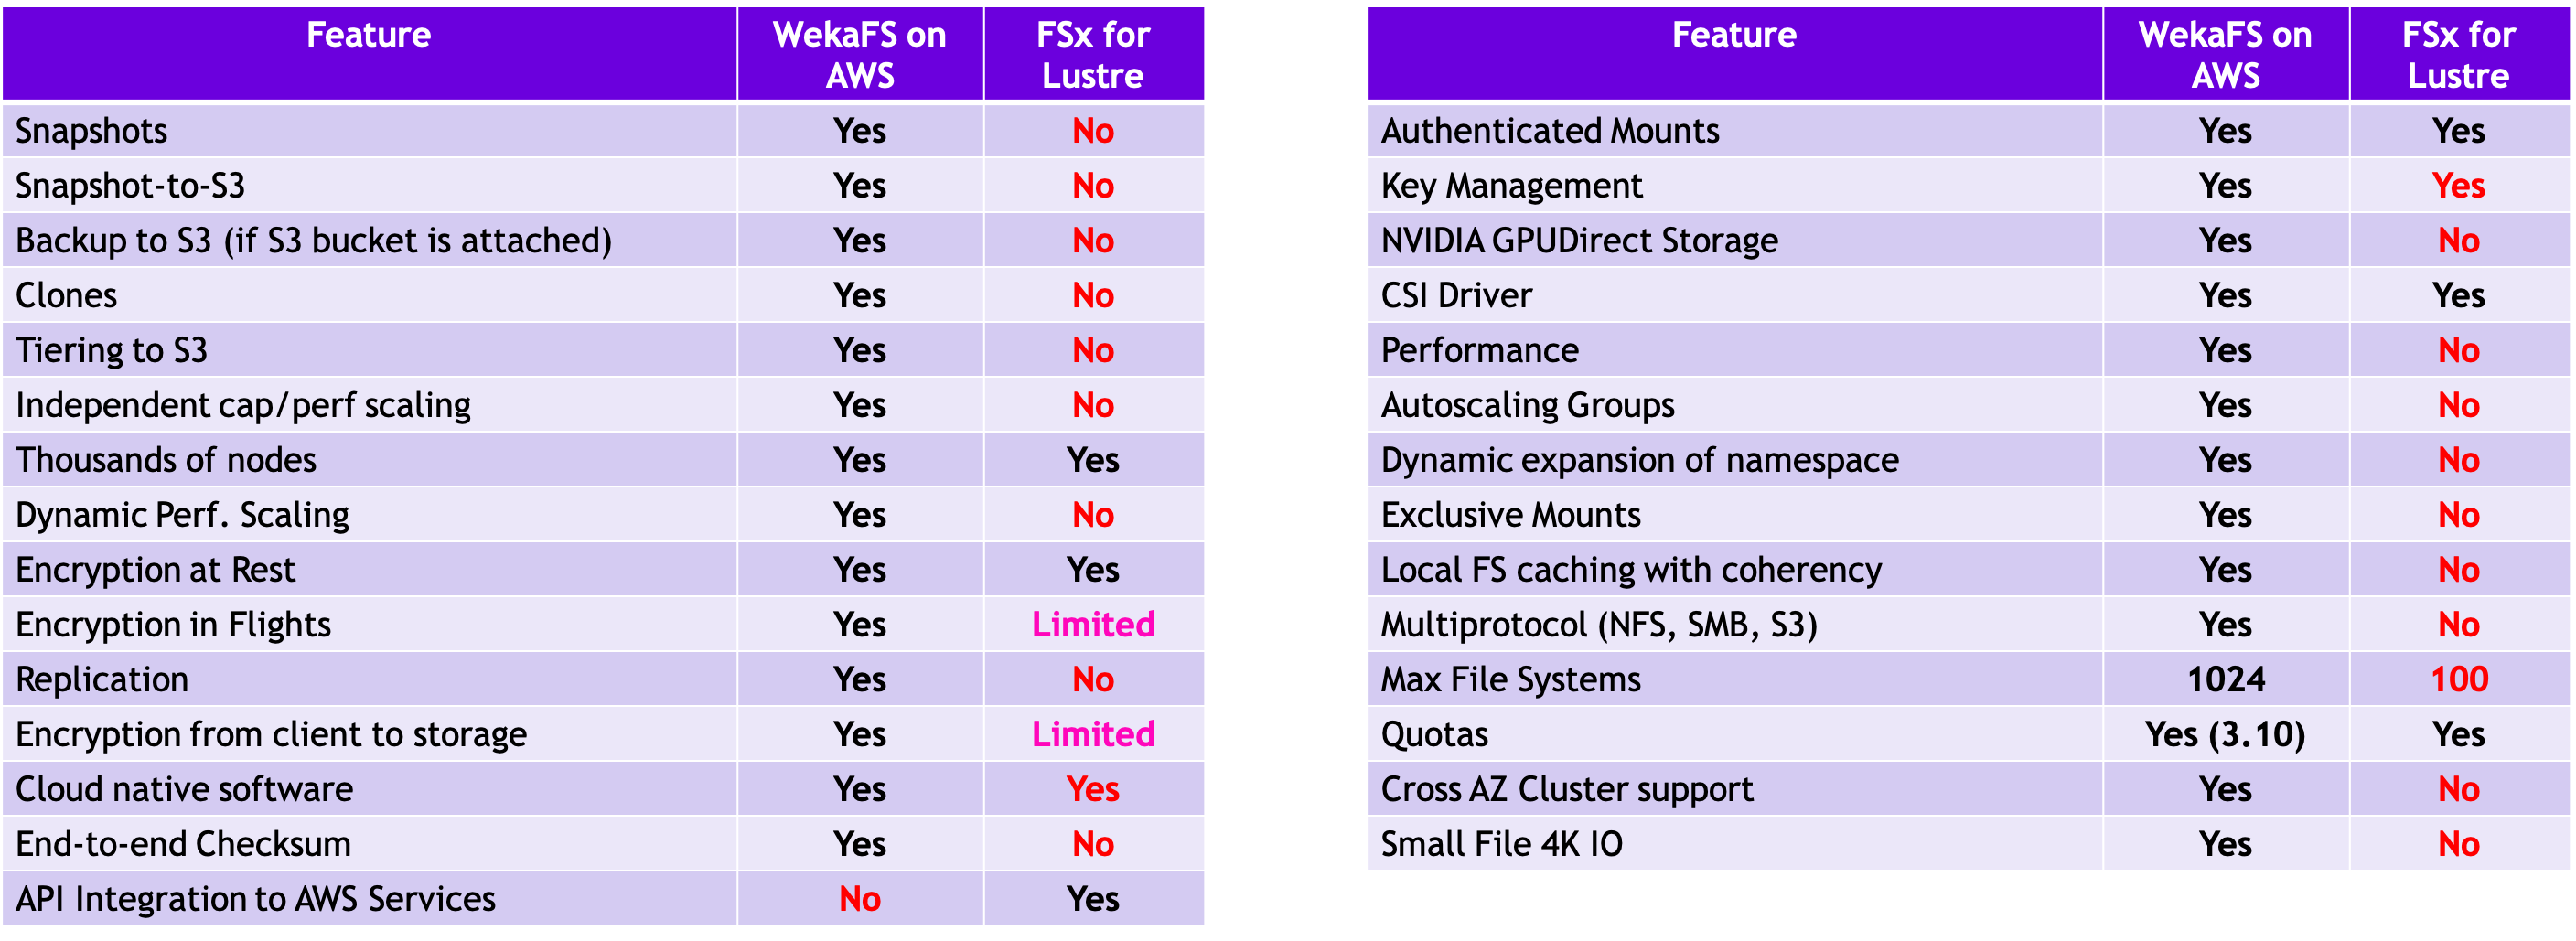 FSx for Lustre vs WekaFS on AWS